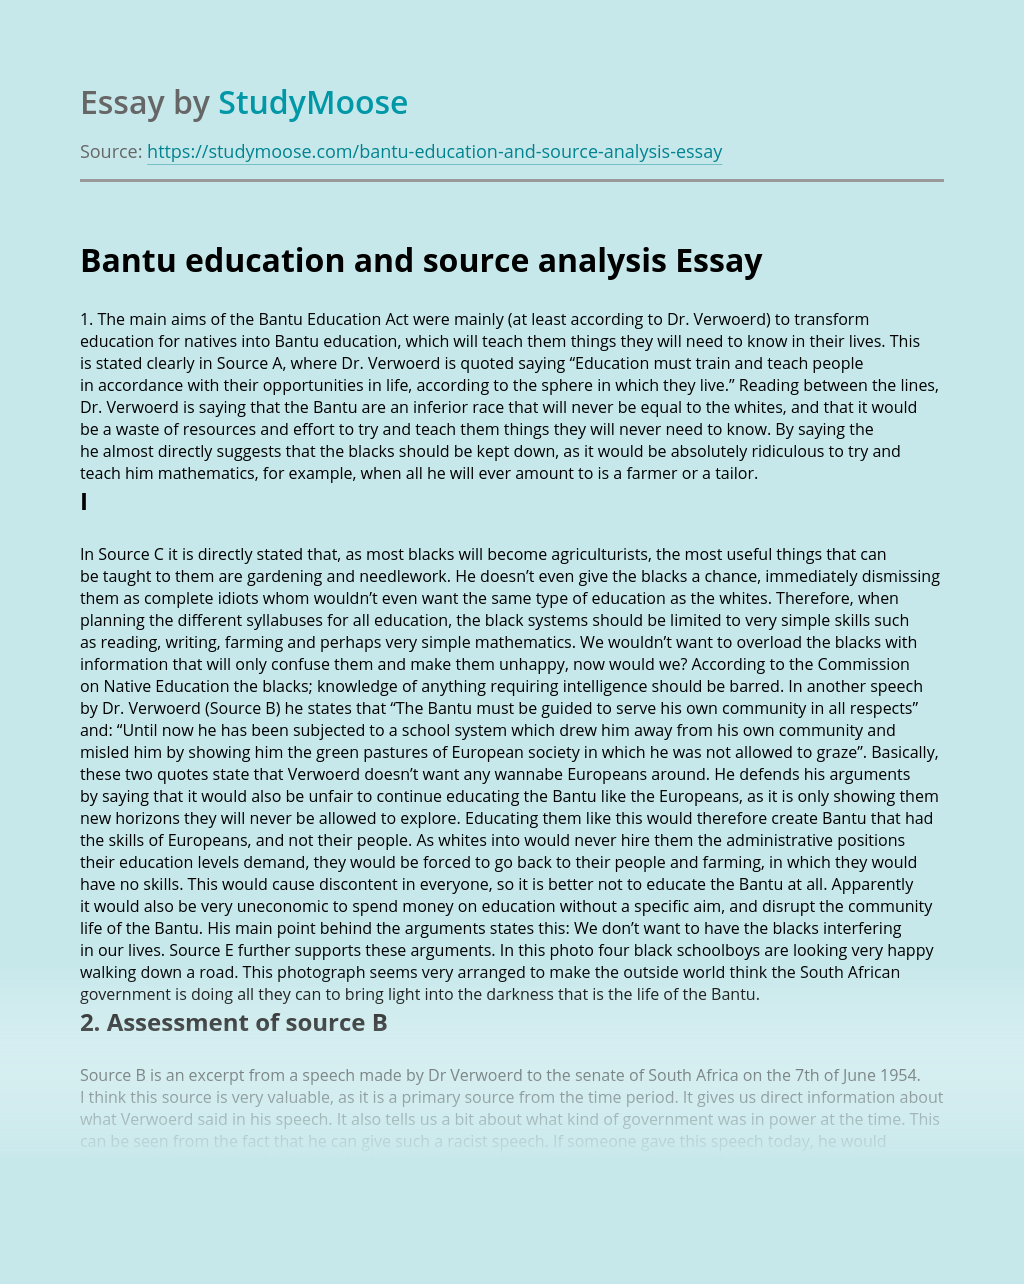 Bantu education and source analysis